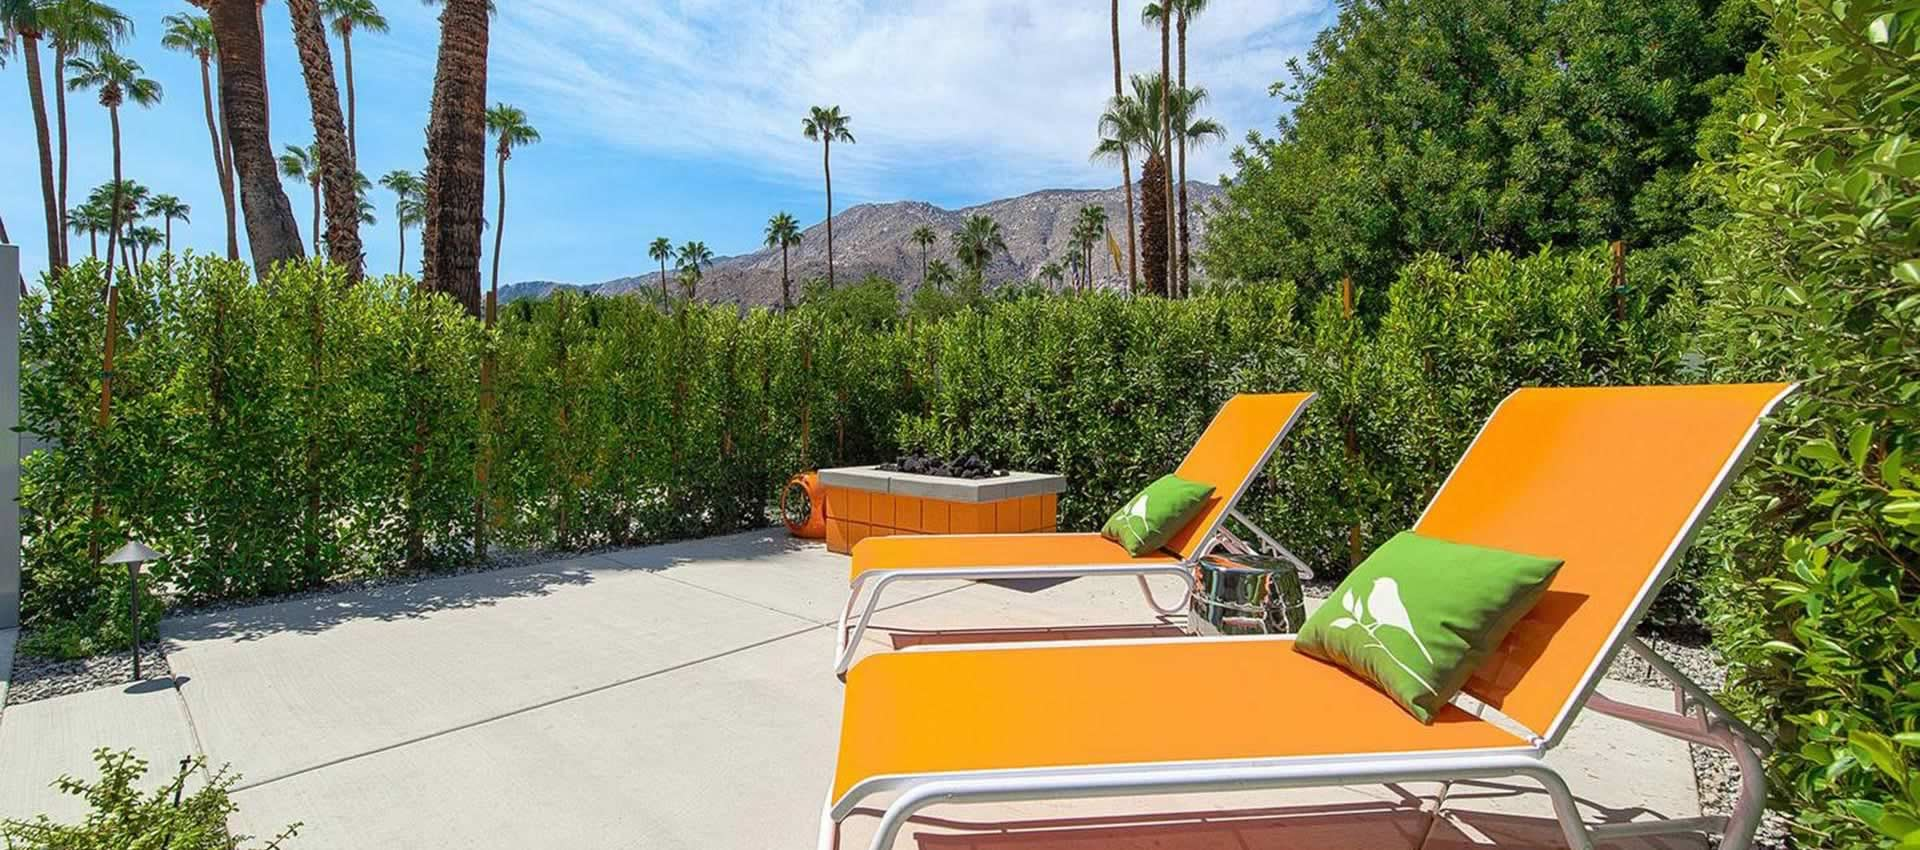 Twist Hotel Unit 107 patio, orange chairs and firepit